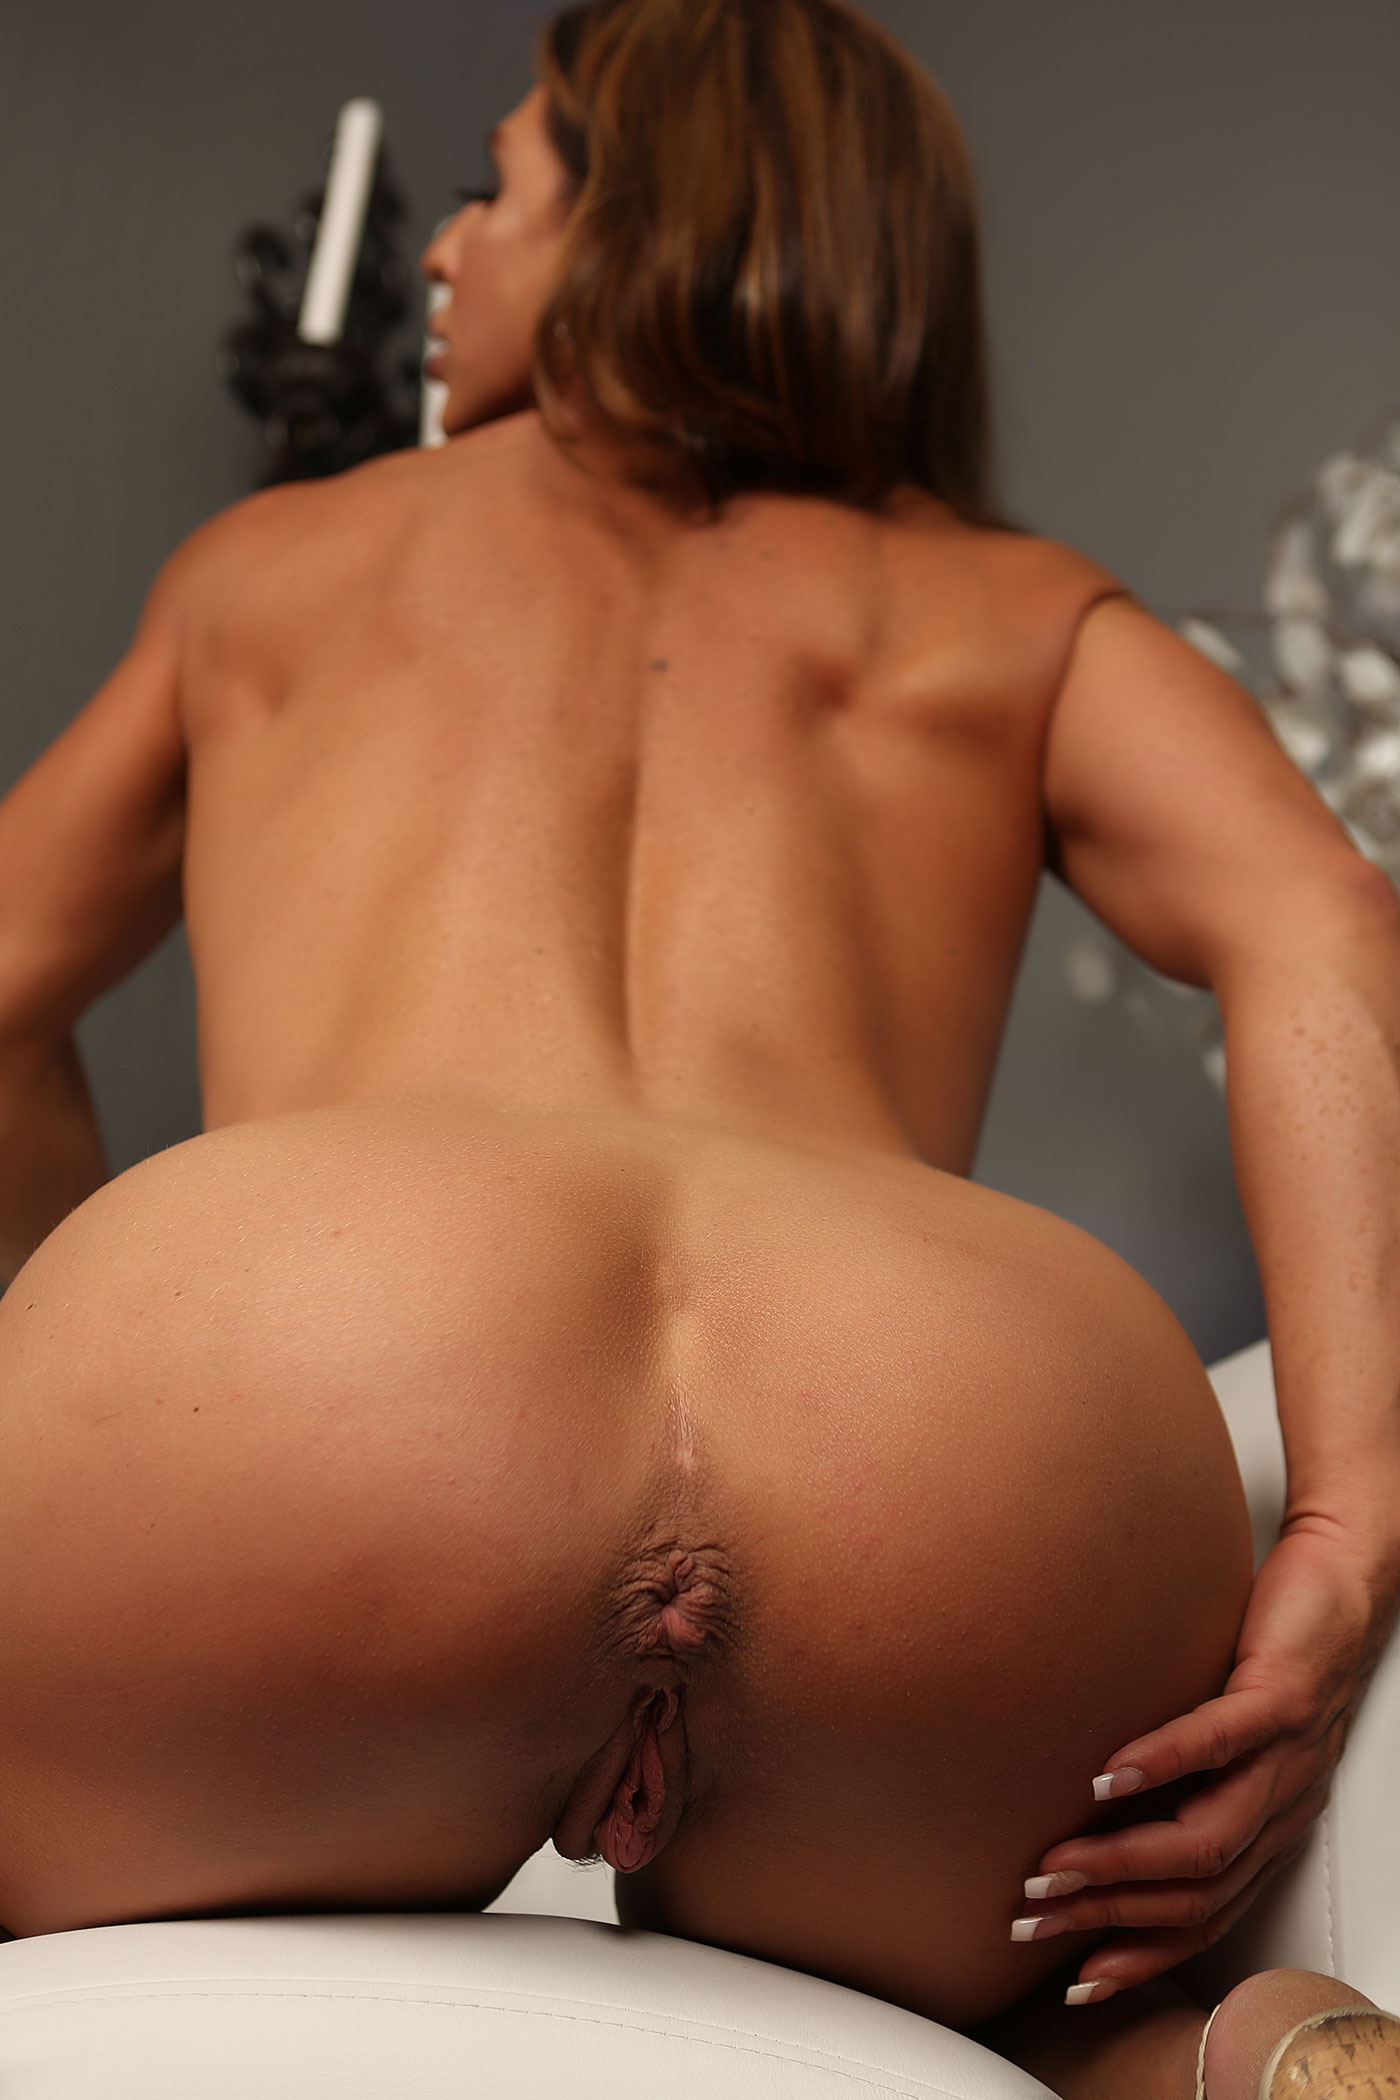 Busty milf female bodybuilder and bald guy have group sex 9